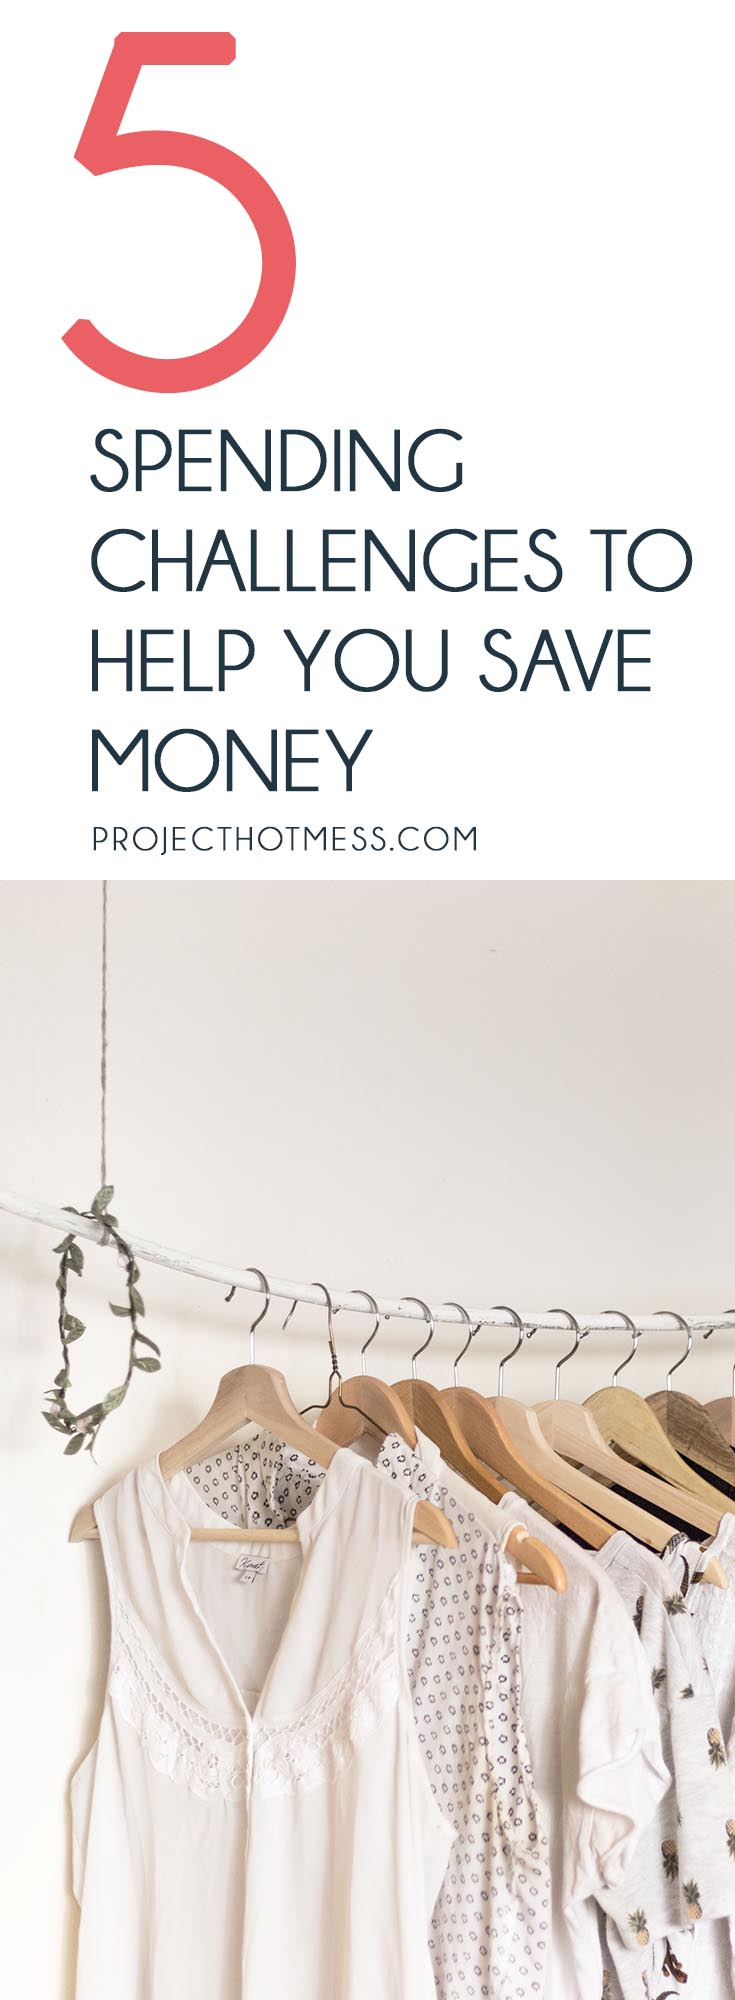 Budgets can get boring and stale after a while, so try out some of these spending challenges that can help you save money and achieve your savings goals.